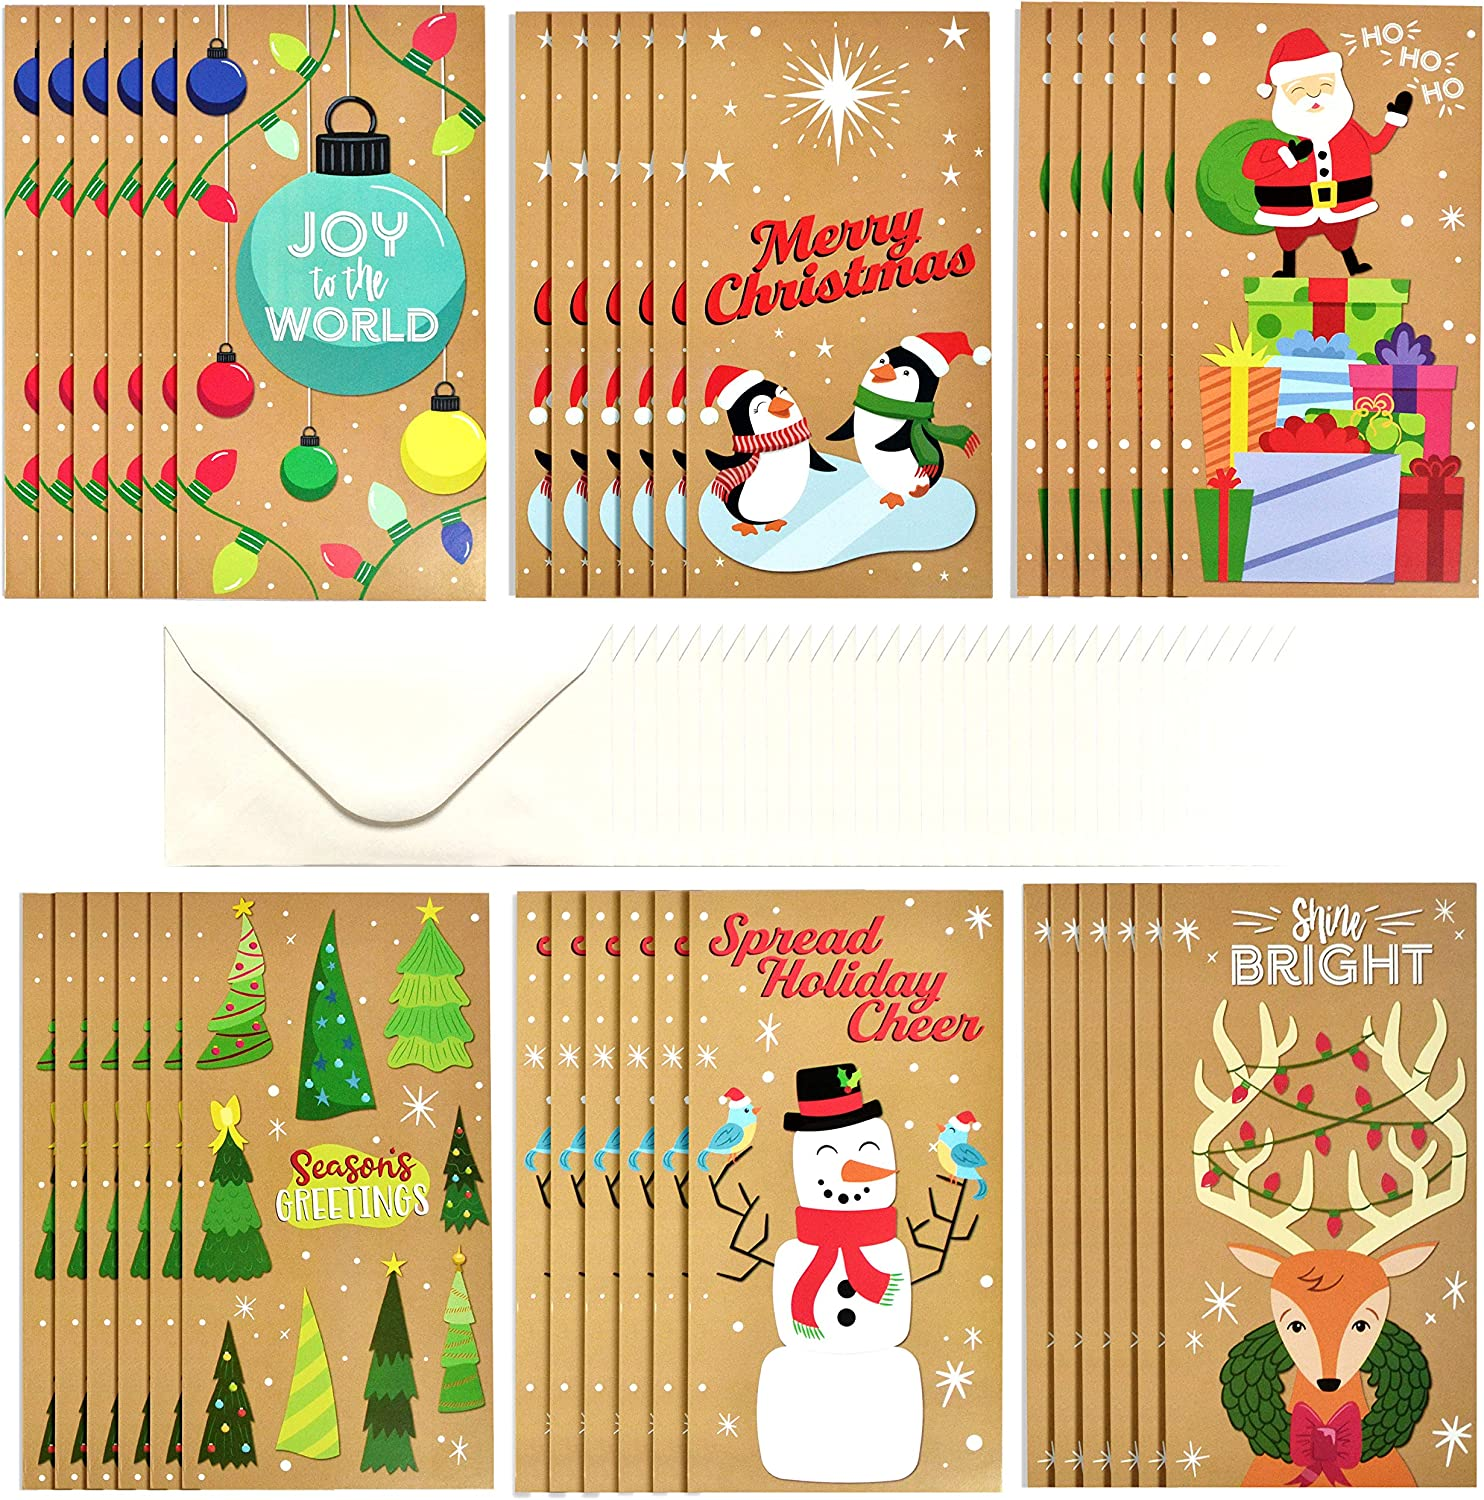 JOYIN 36 Pcs Kraft Paper Christmas Holiday Greeting Cards Money/Gift Card Holder for Cash, Checks, or Gift Cards with 36 White Envelopes